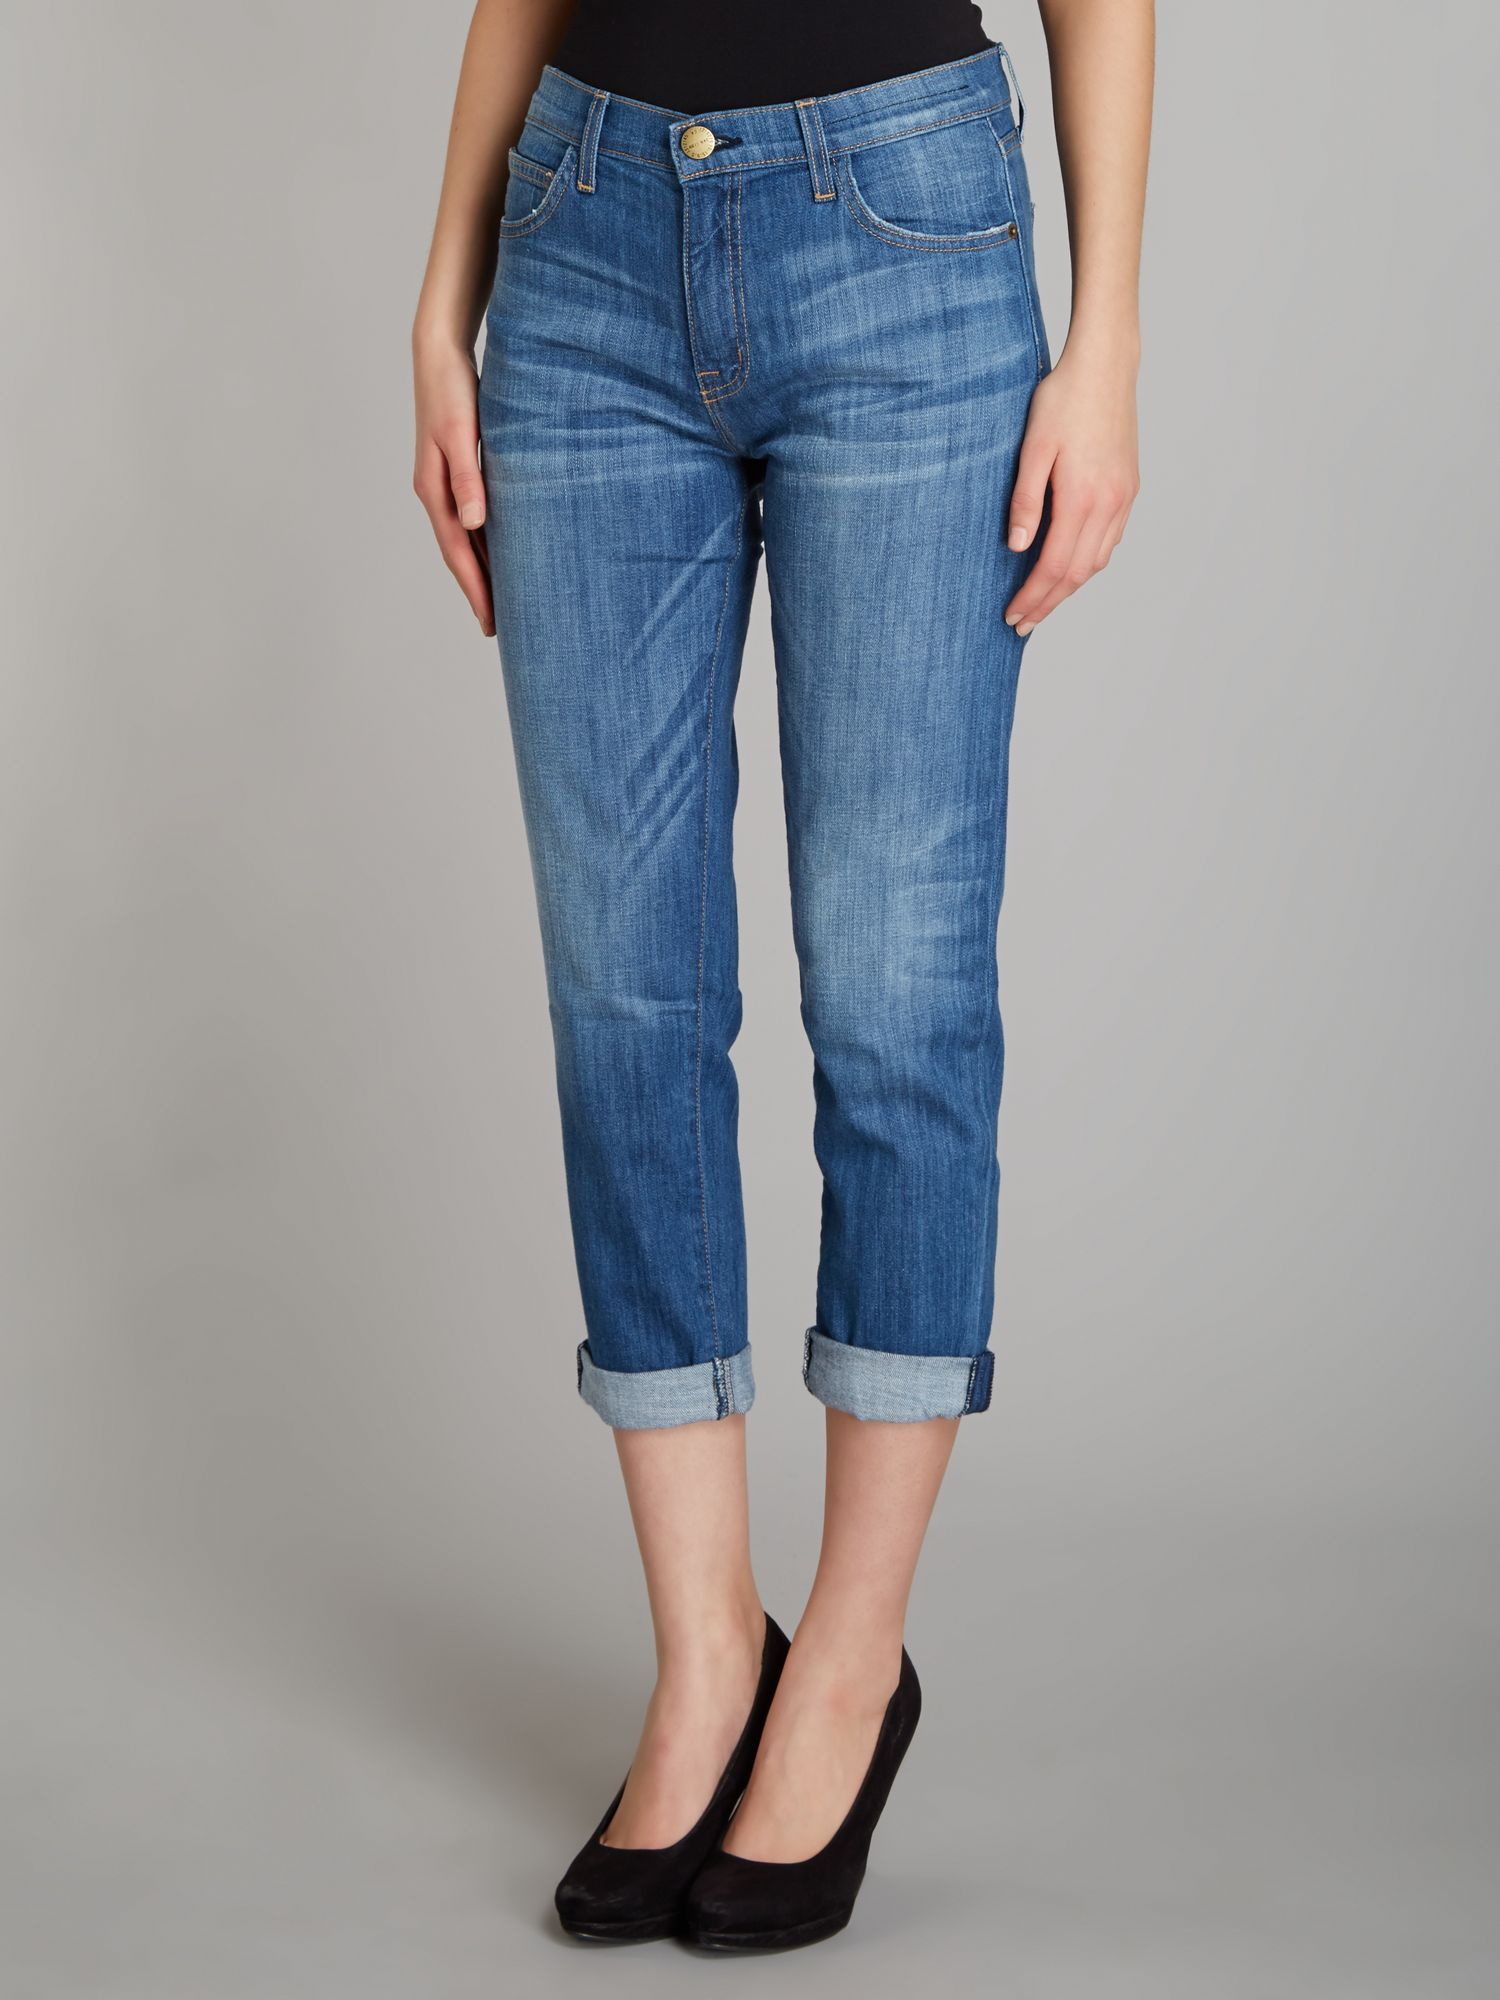 The Fling boyfriend jeans in Cambridge